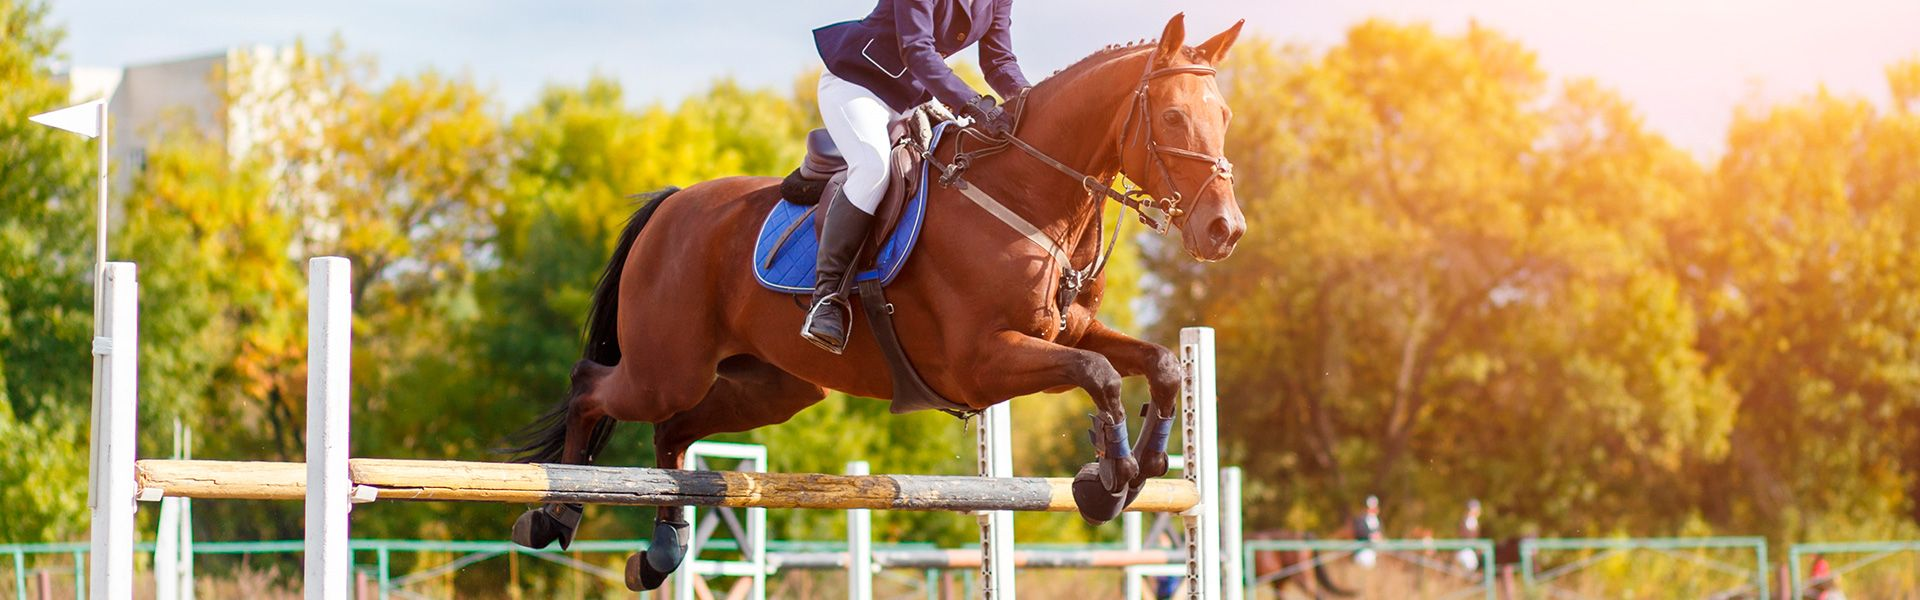 Camping Perros Jump equestrian competition